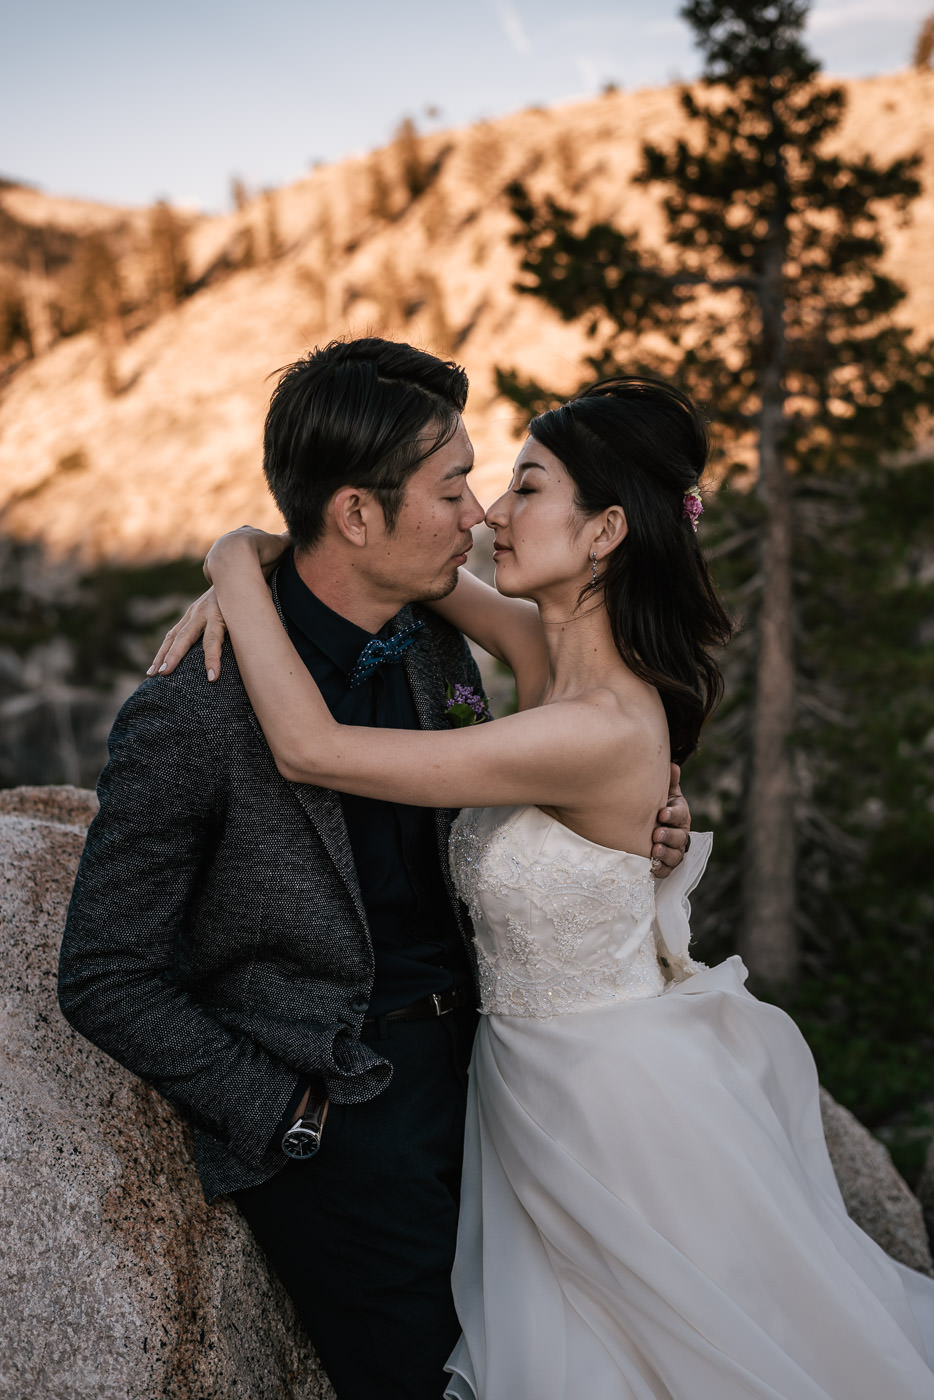 Newlyweds get nose to nose for an intimate embrace atop a mountain in the National Parks of the United States.